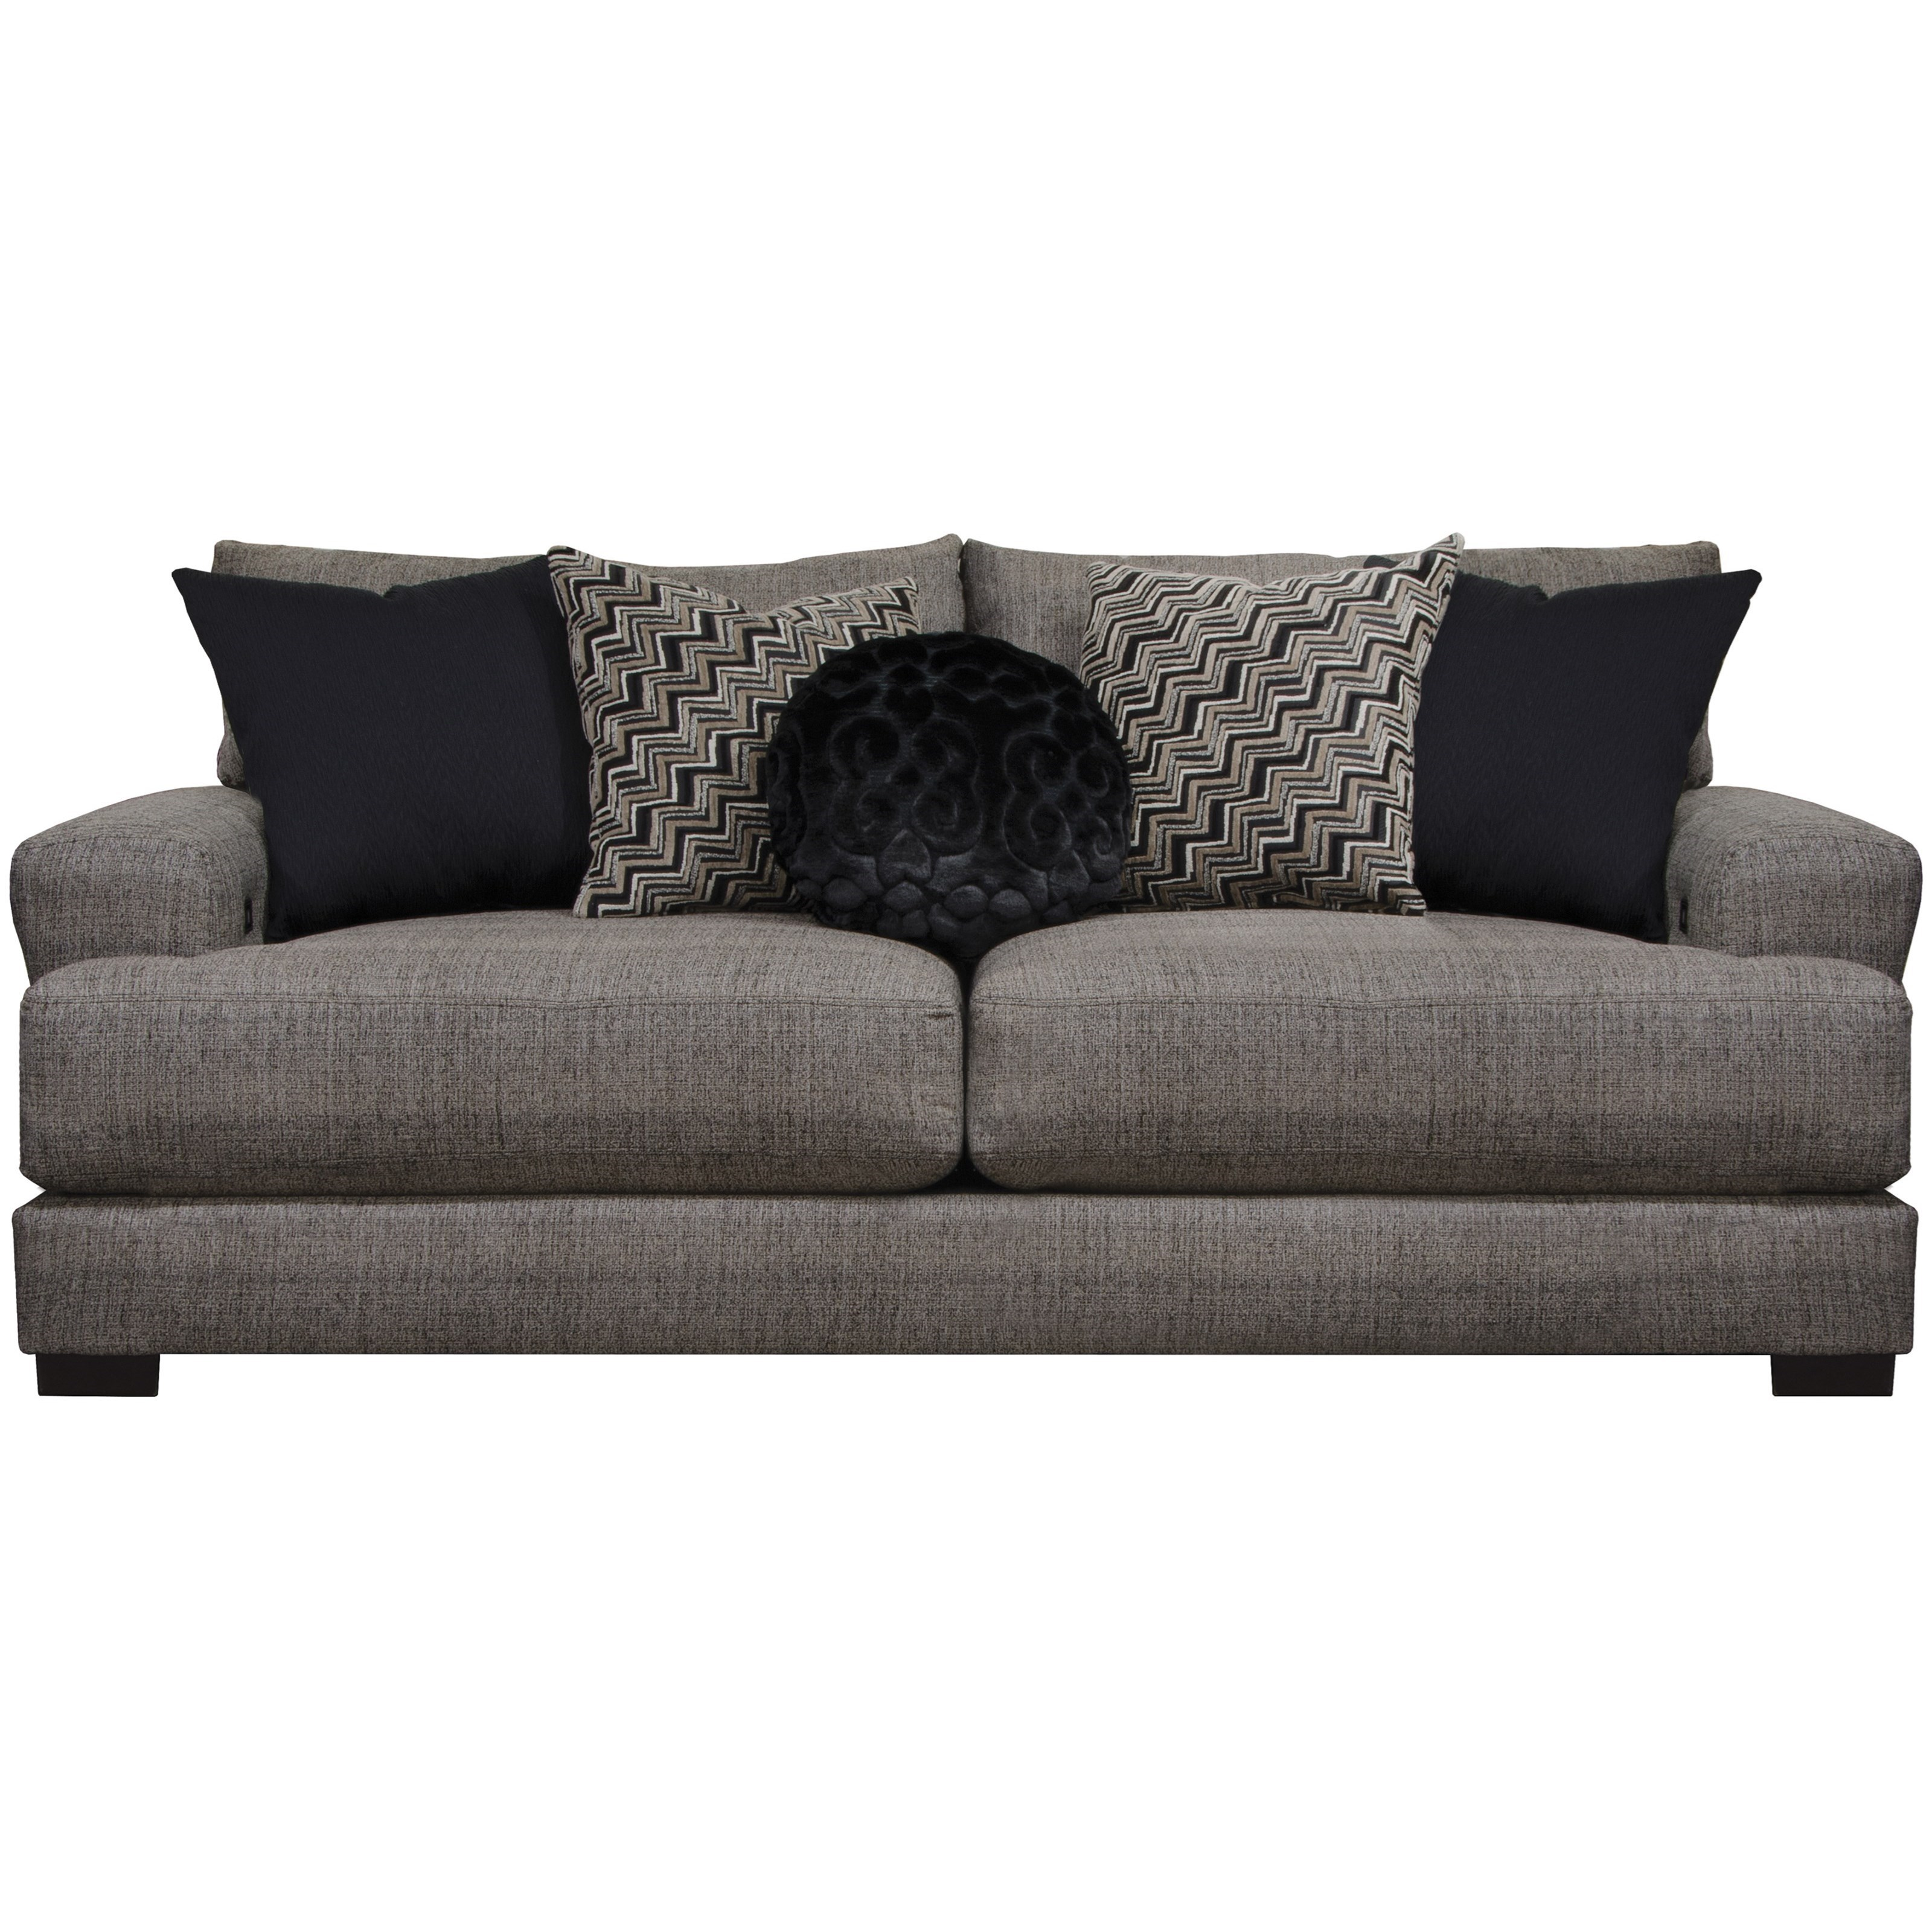 jackson furniture sofa how to wash microfiber covers ava two seater with plump padding and wood legs